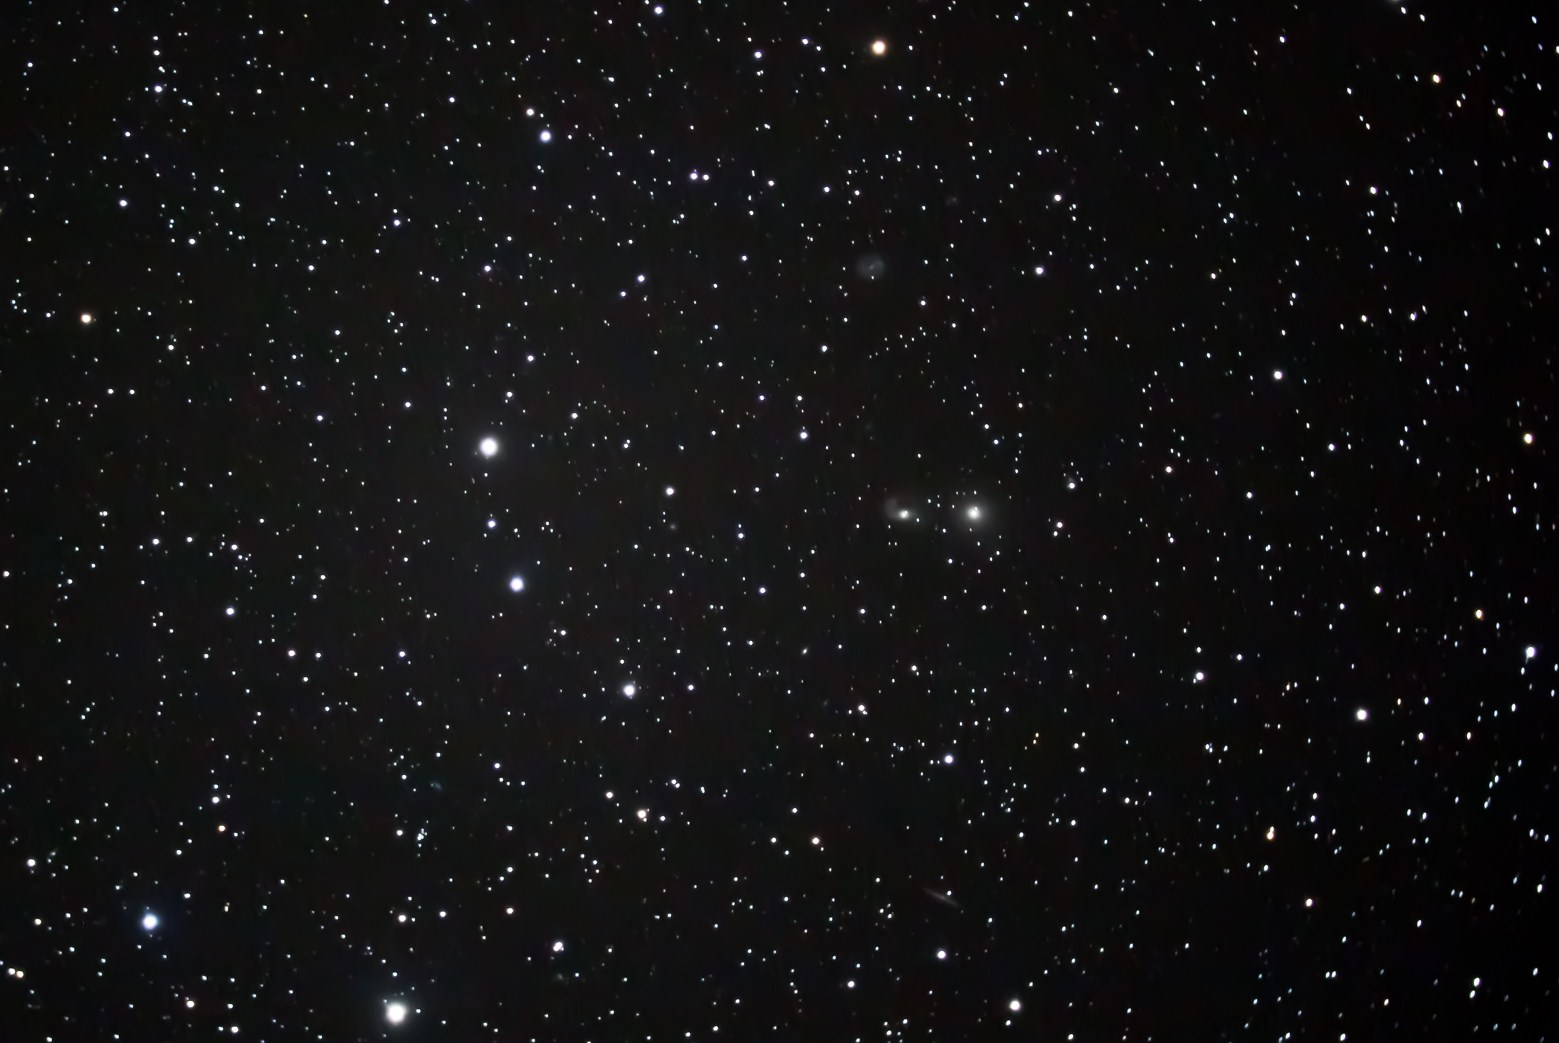 The photograph of the NGC 2275